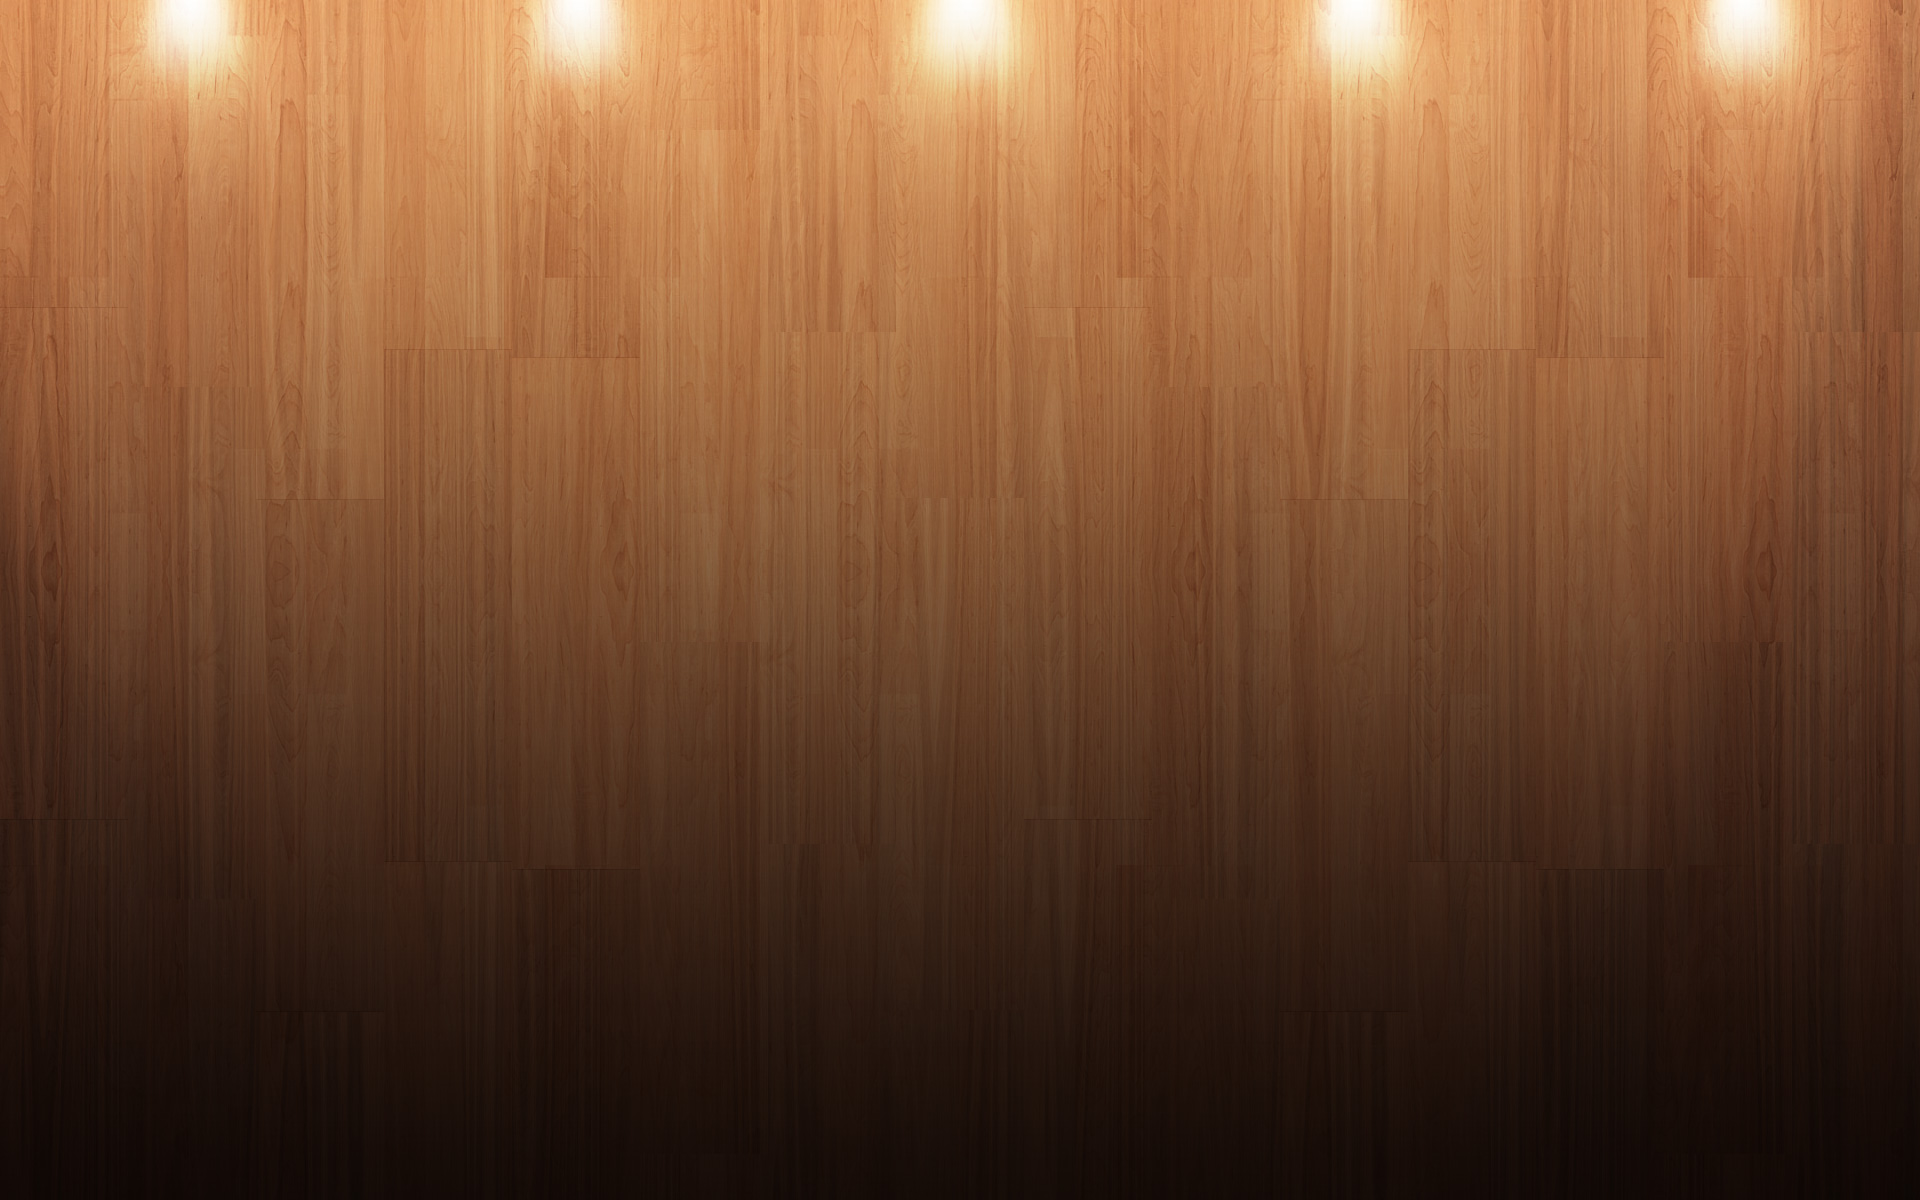 Wood Paneling 04 WS By Temporalvistasquash Desktop Wallpaper   Home 1920x1200